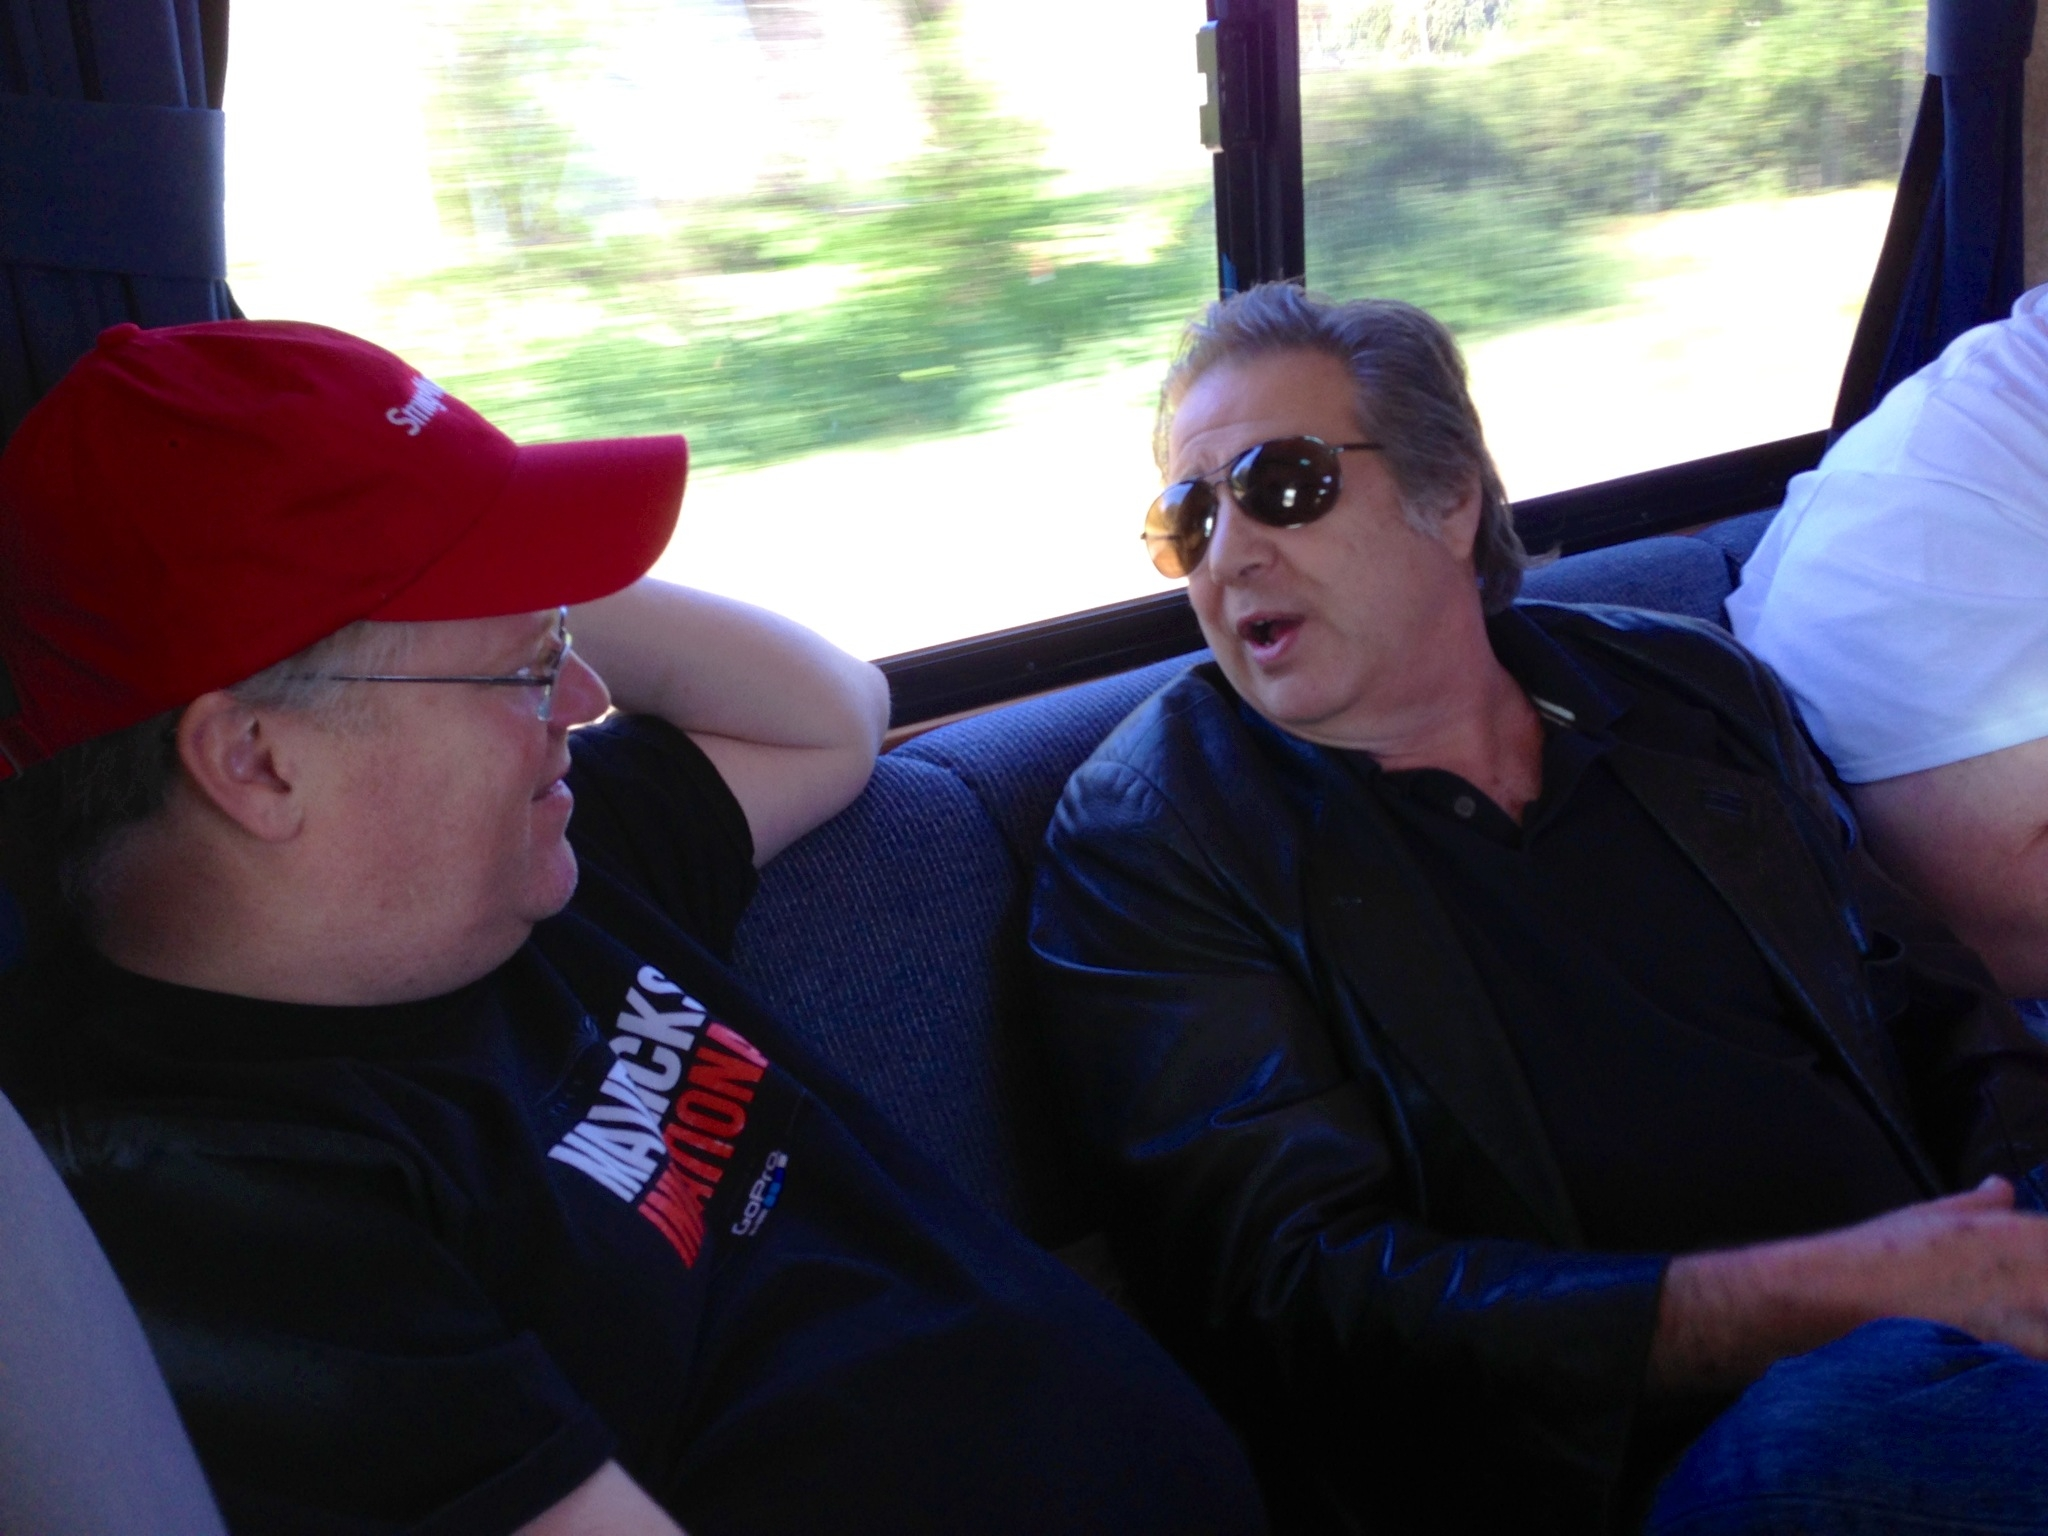 Robert Scoble and Greg Kihn